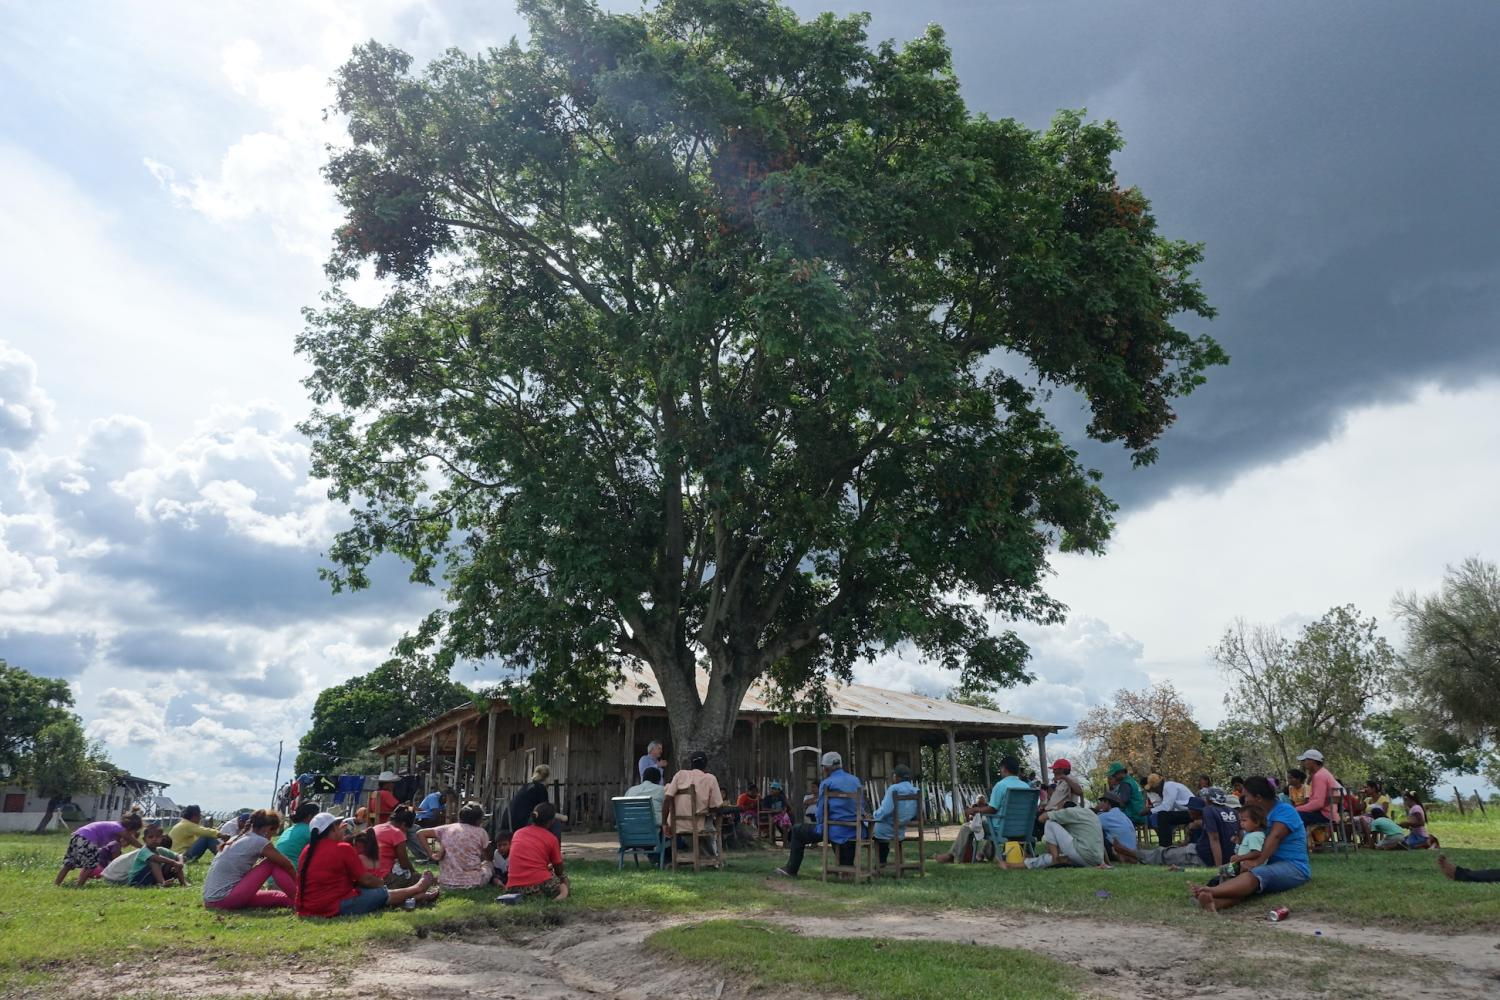 Group of indigenous people in Paraguay sitting under a tree in front of a building